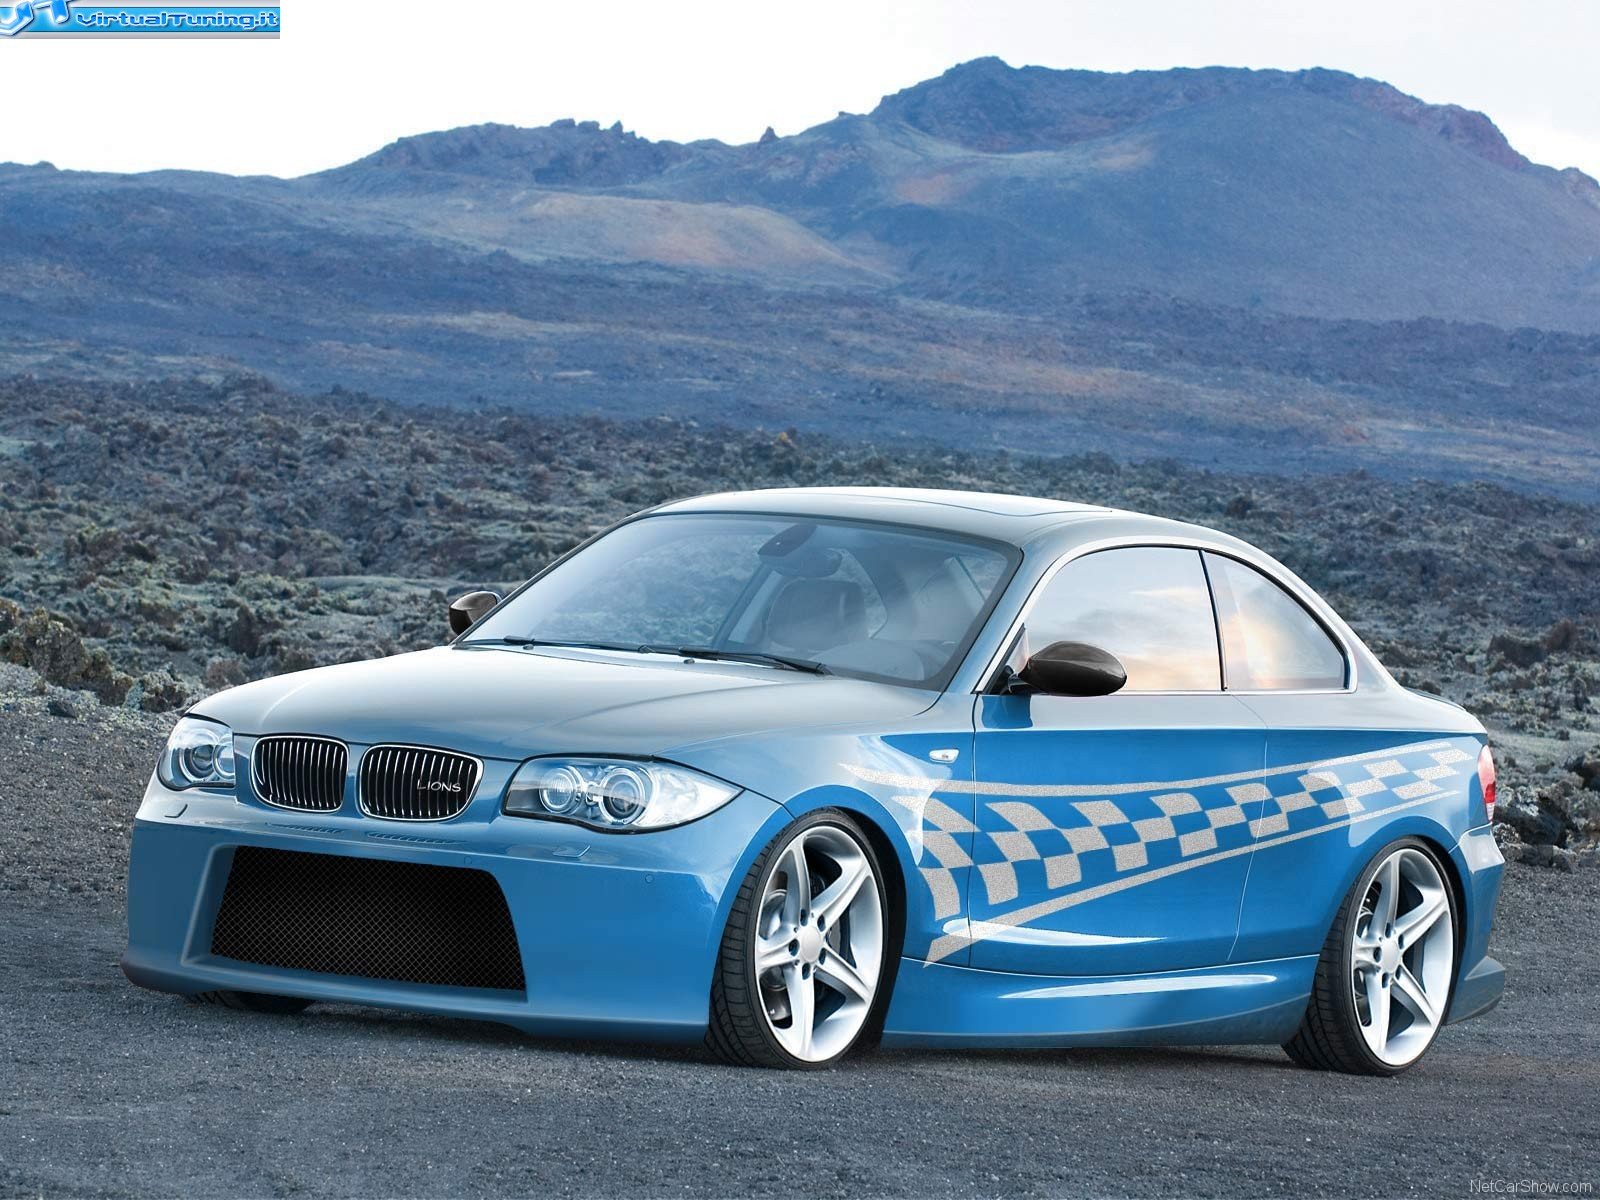 bmw serie 1 coupe by lions tuning virtualtuning it. Black Bedroom Furniture Sets. Home Design Ideas